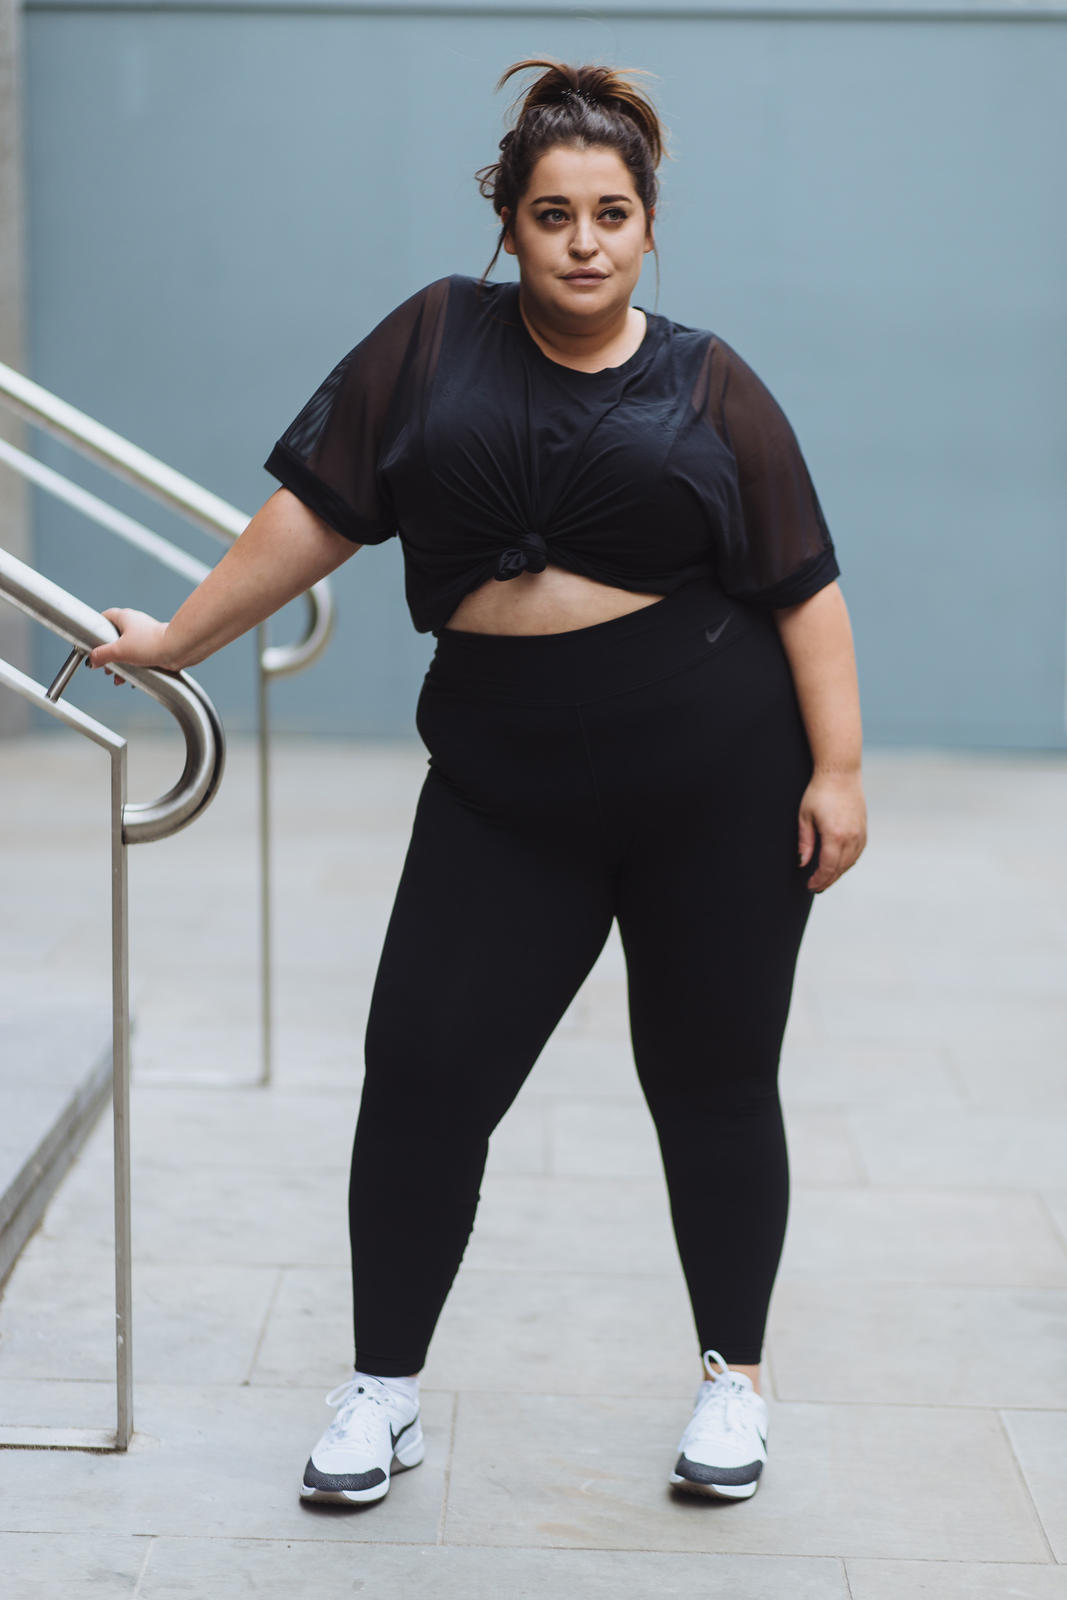 The Nike Plus Size Collection - Nike News